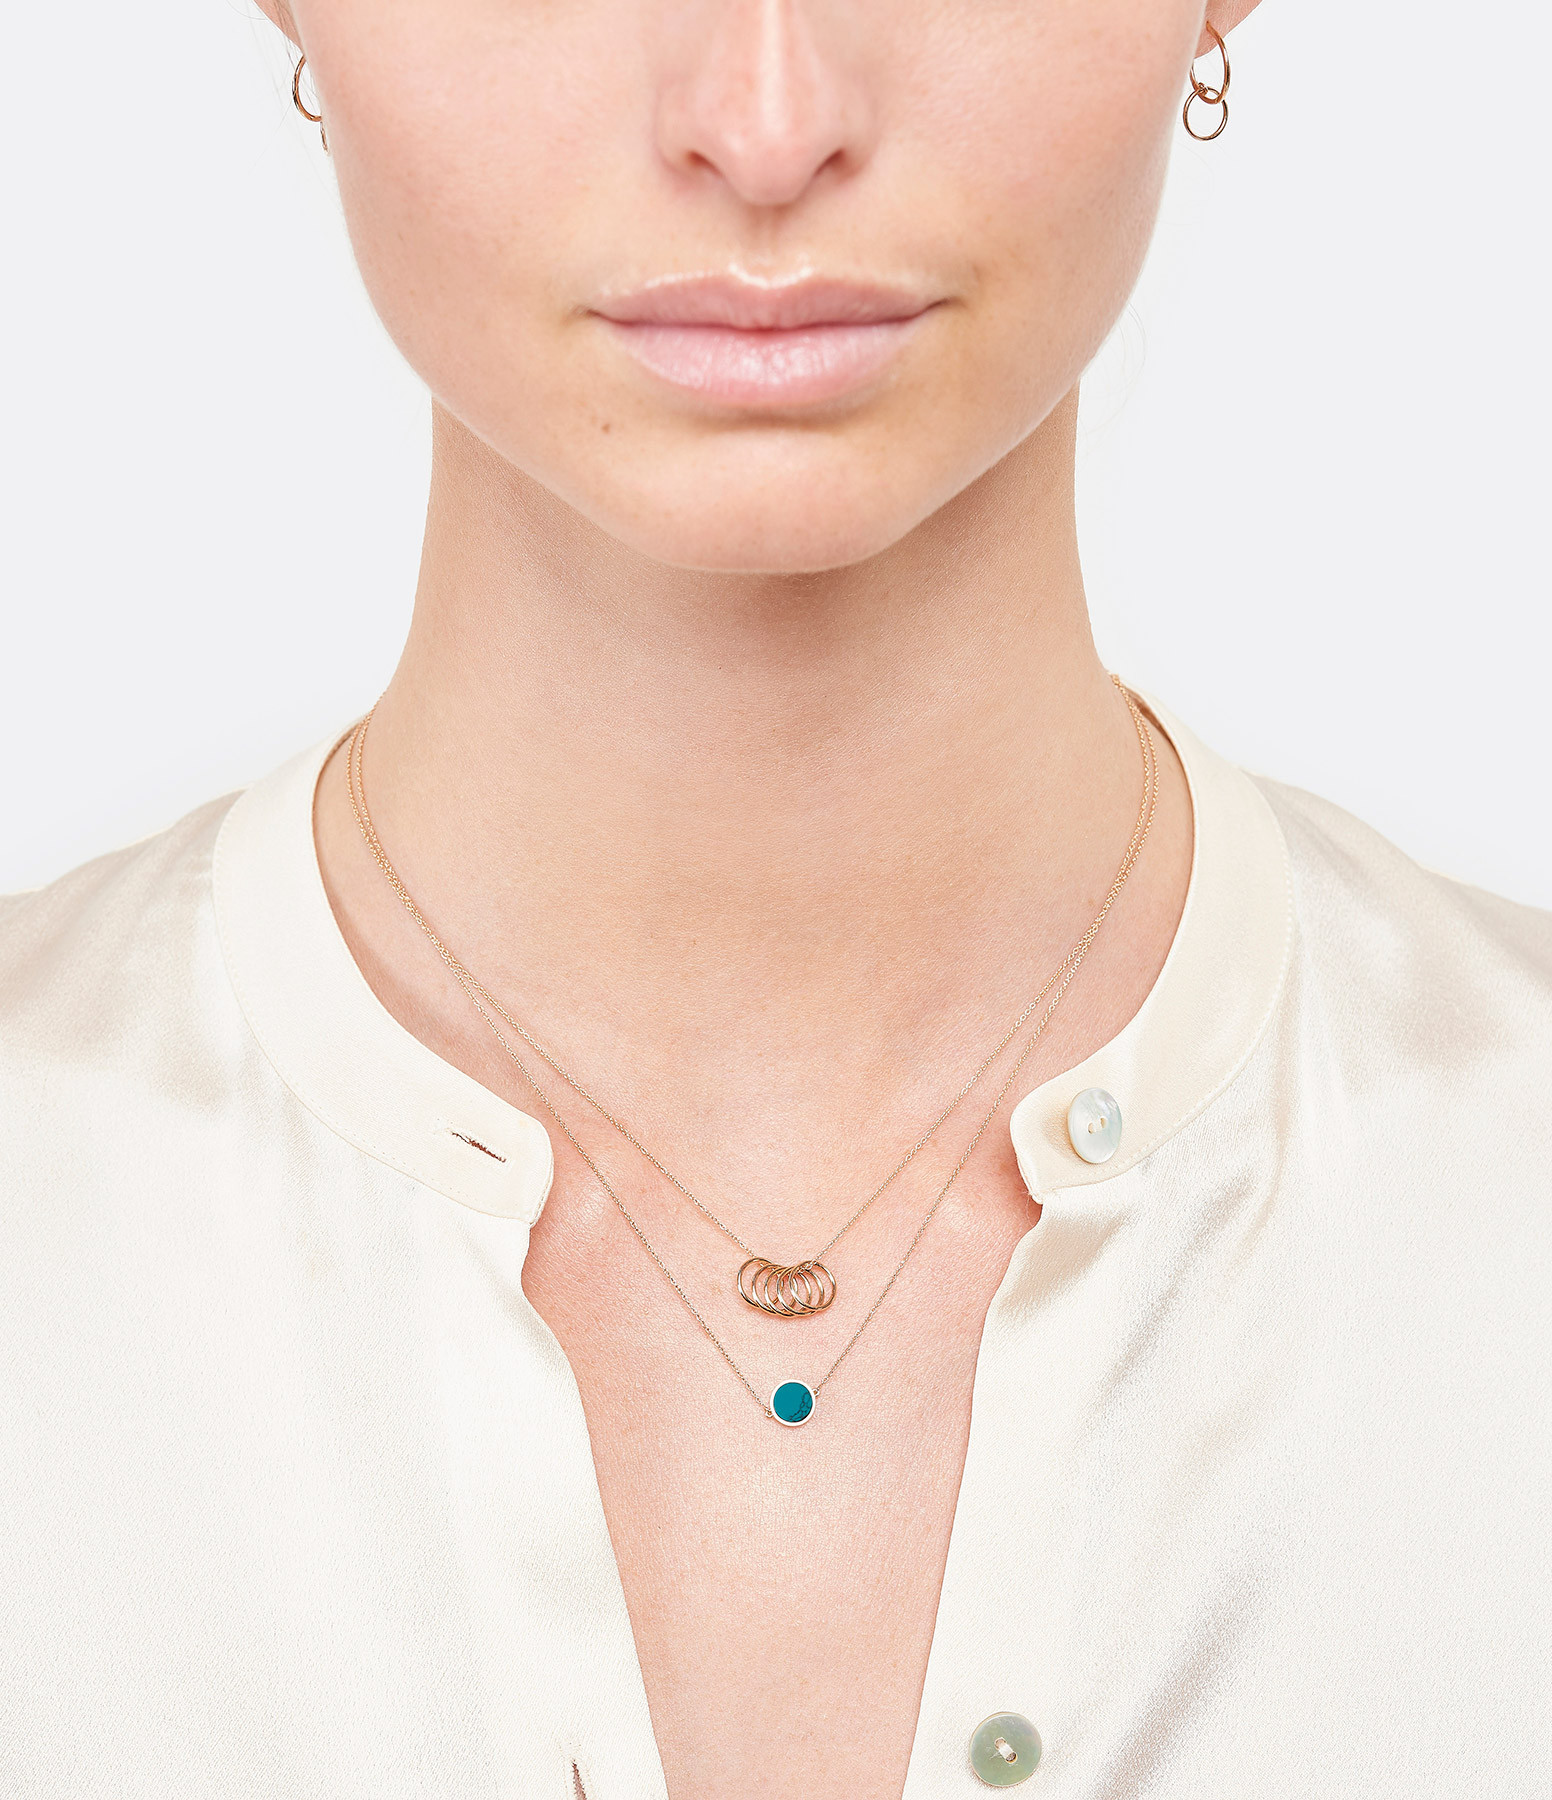 GINETTE NY - Collier Tiny 5 Cercles Or Rose